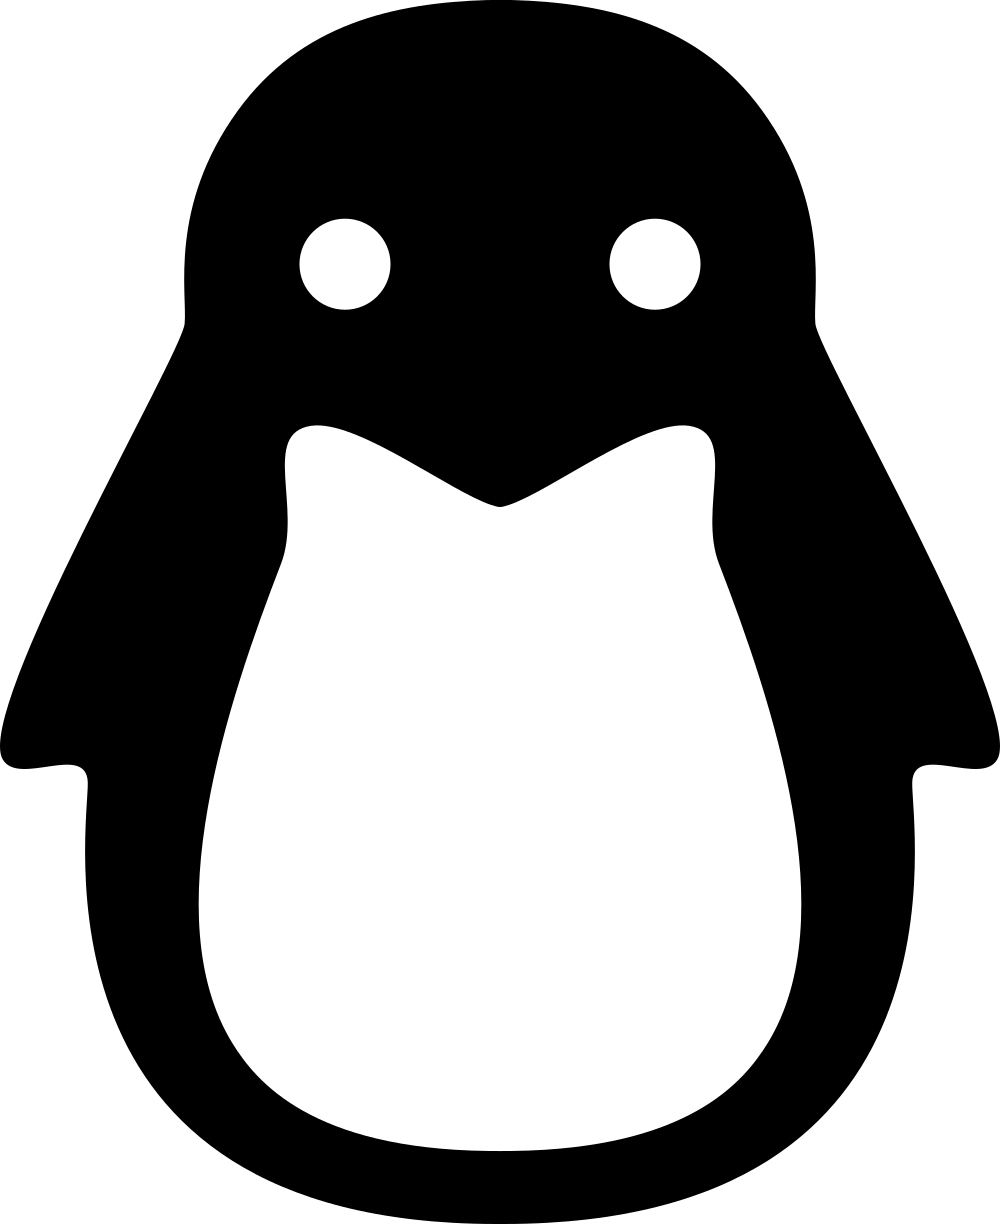 Linux penguin logo png. The other